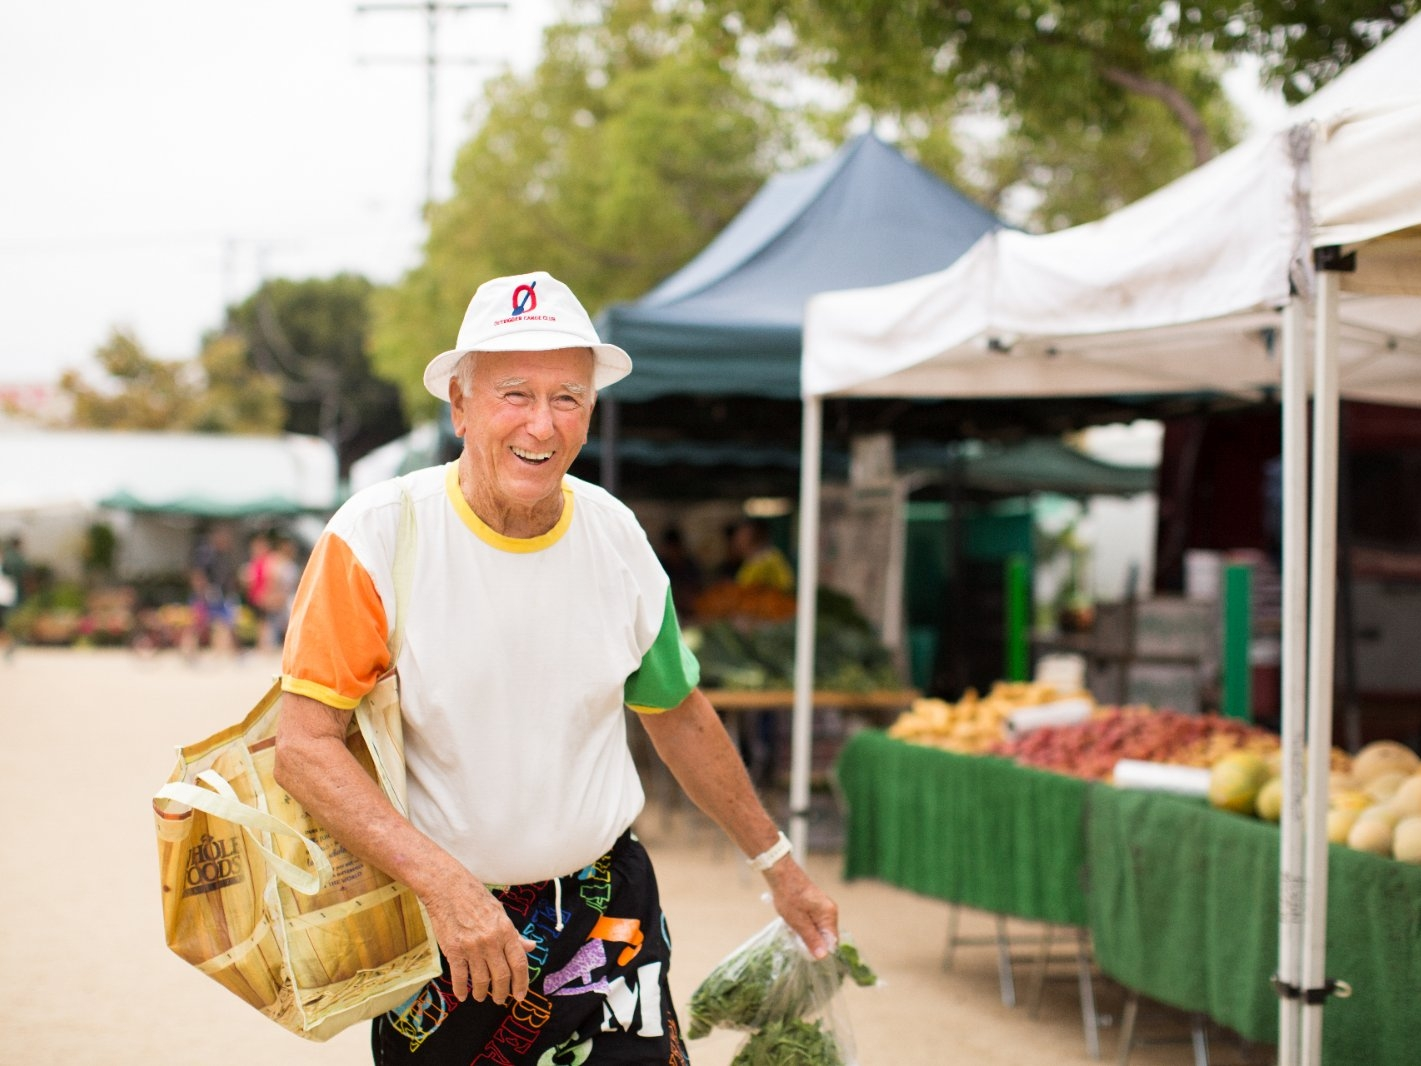 A man carries produce after shopping at farmers' market.